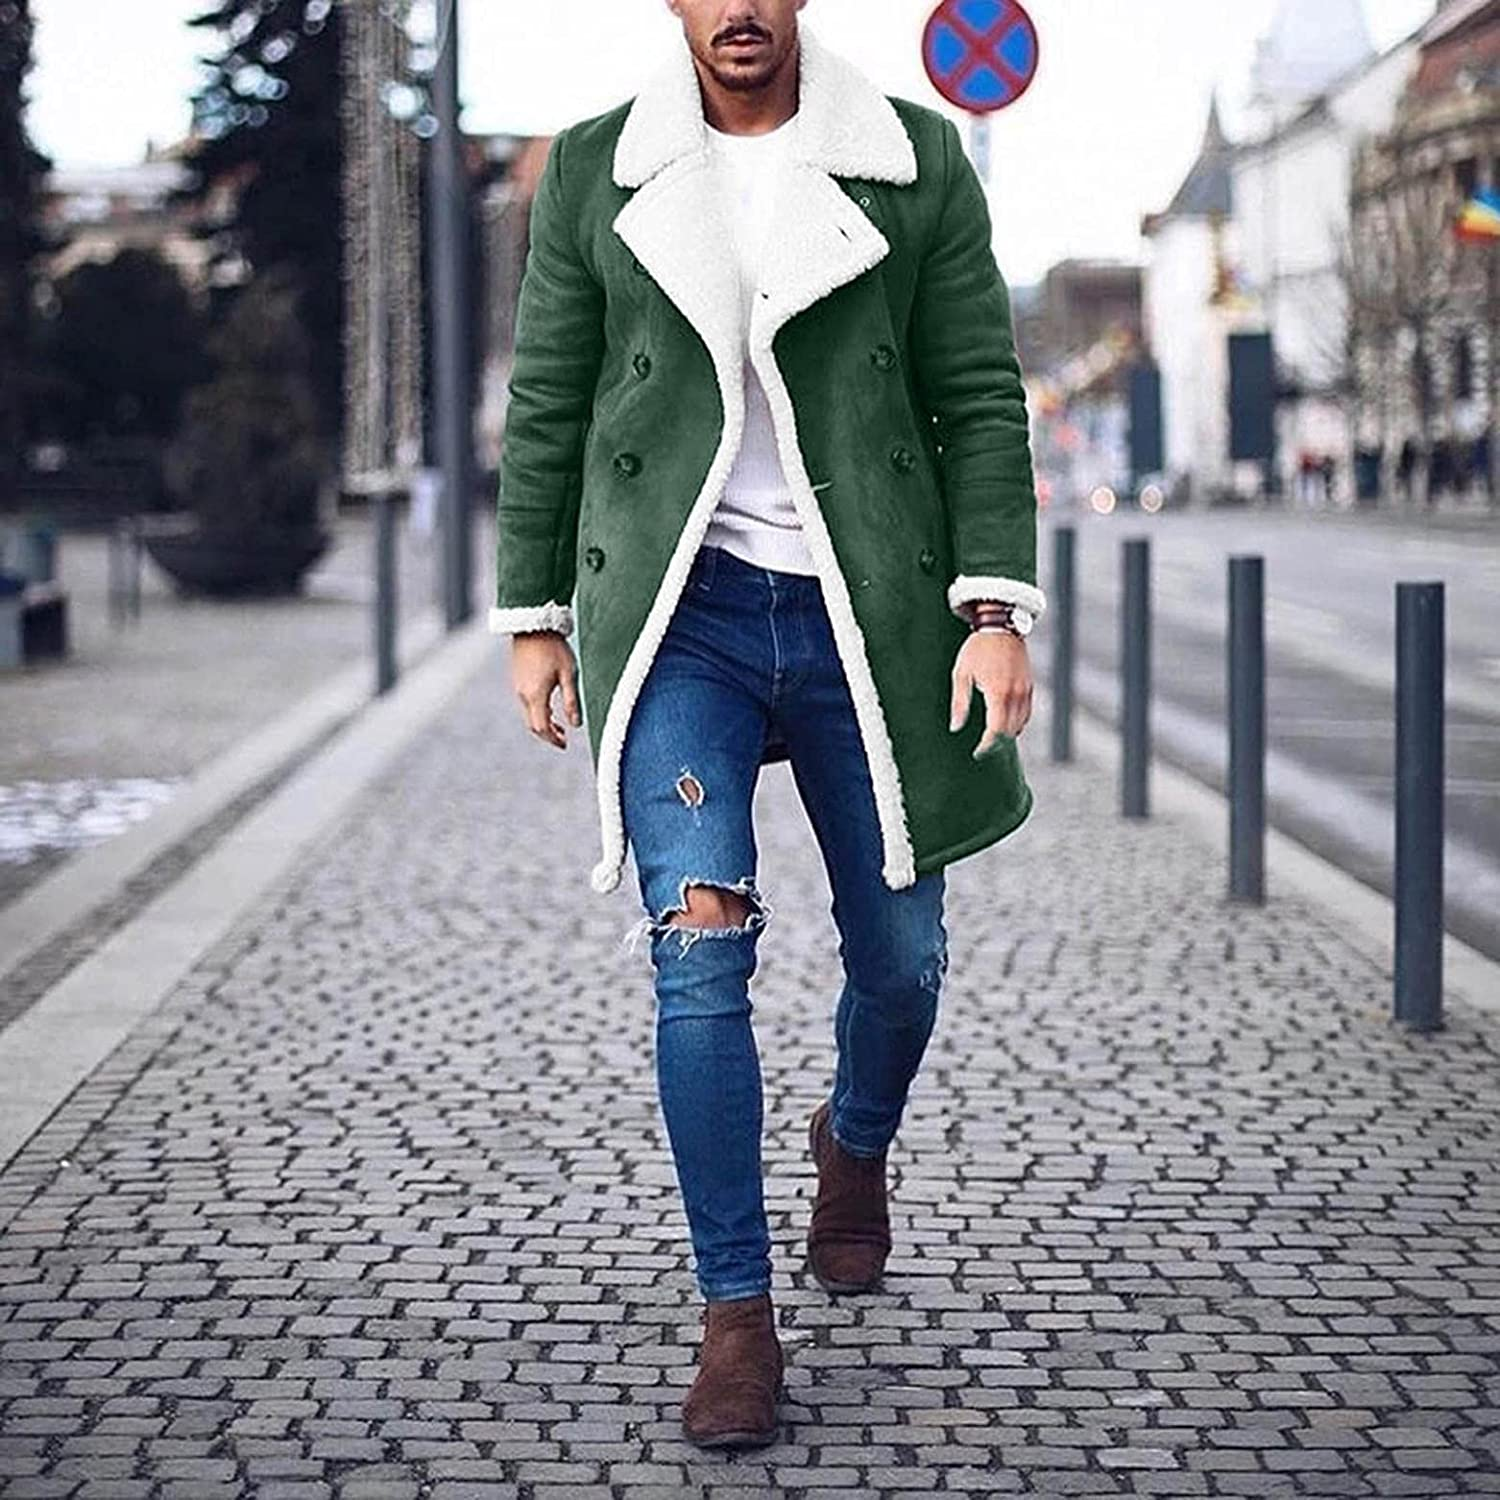 PHSHY Mens Fuzzy Fleece Faux Fur Jacket Coat Shearling Shaggy Softshell Jacket Winter Thermal Thick Overcoat Outwear